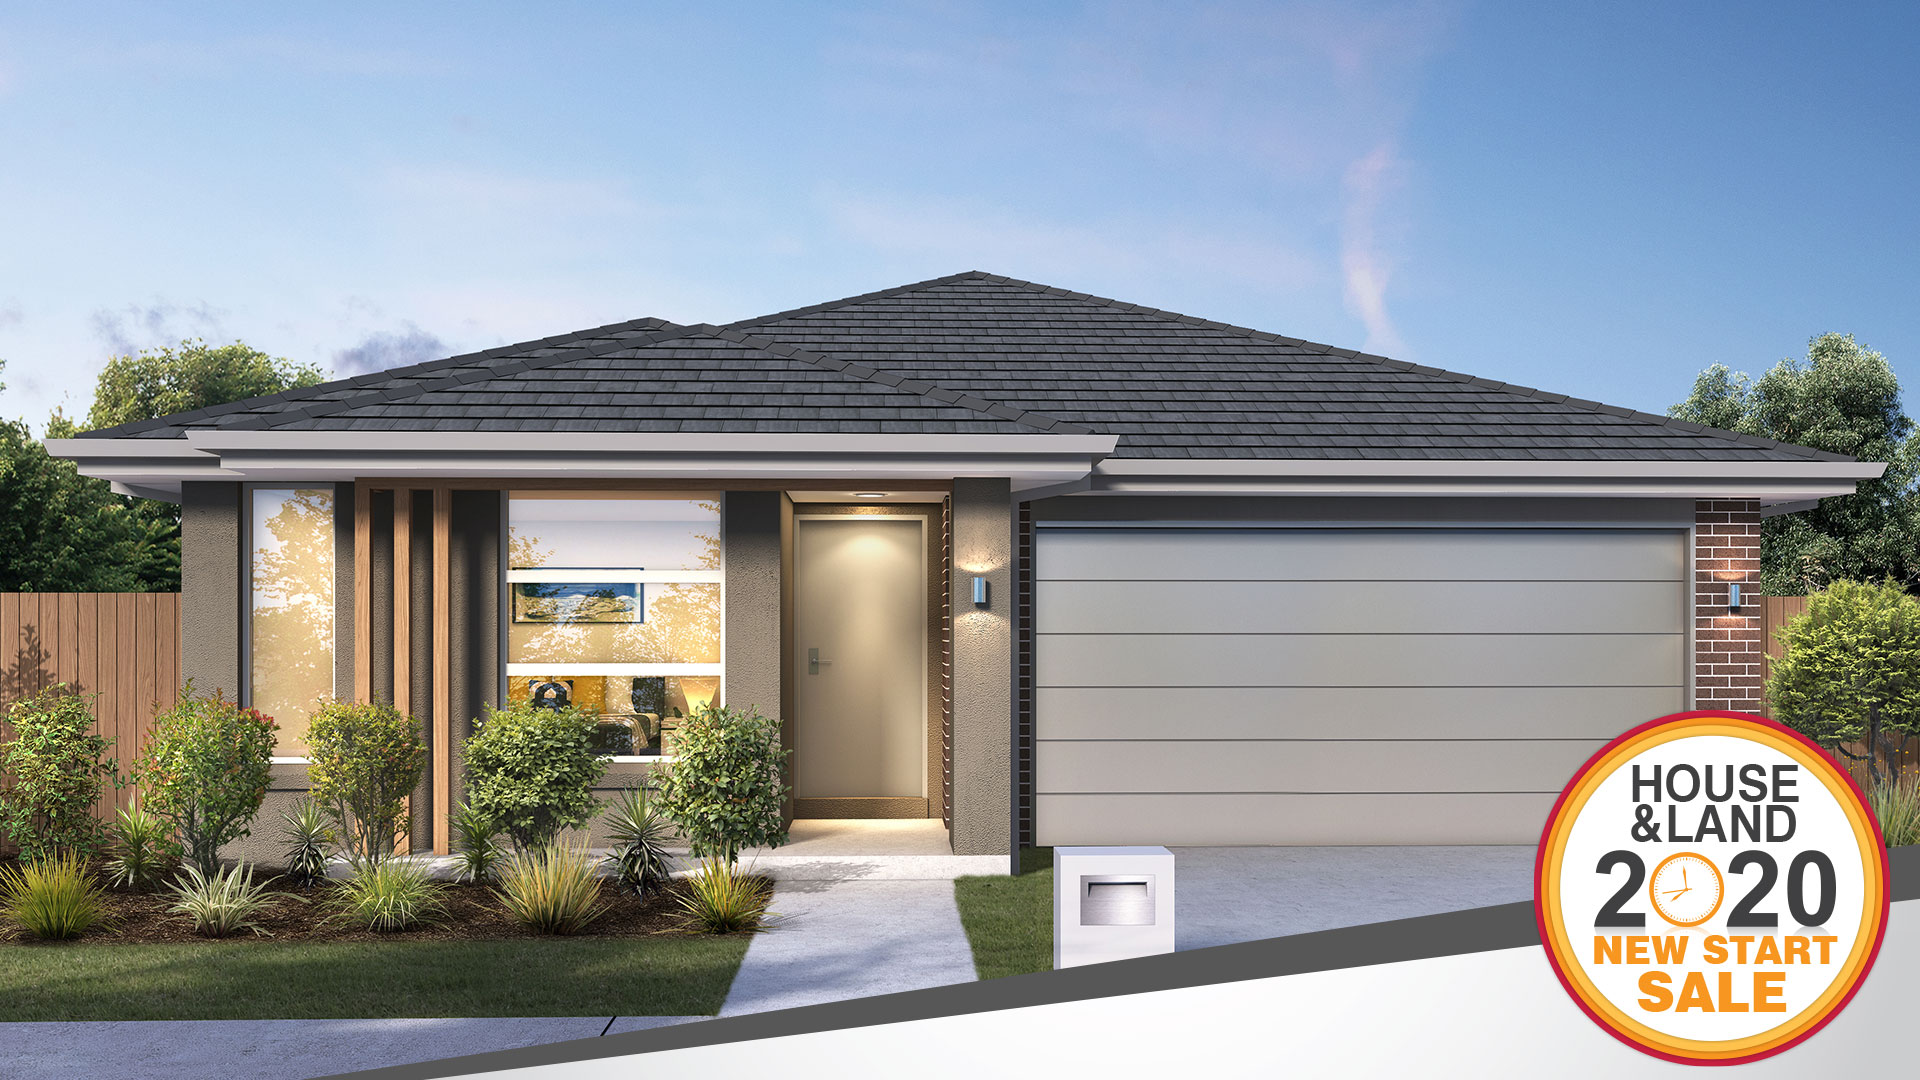 400 House Land New Start Sale WebsiteImages OranPark7128